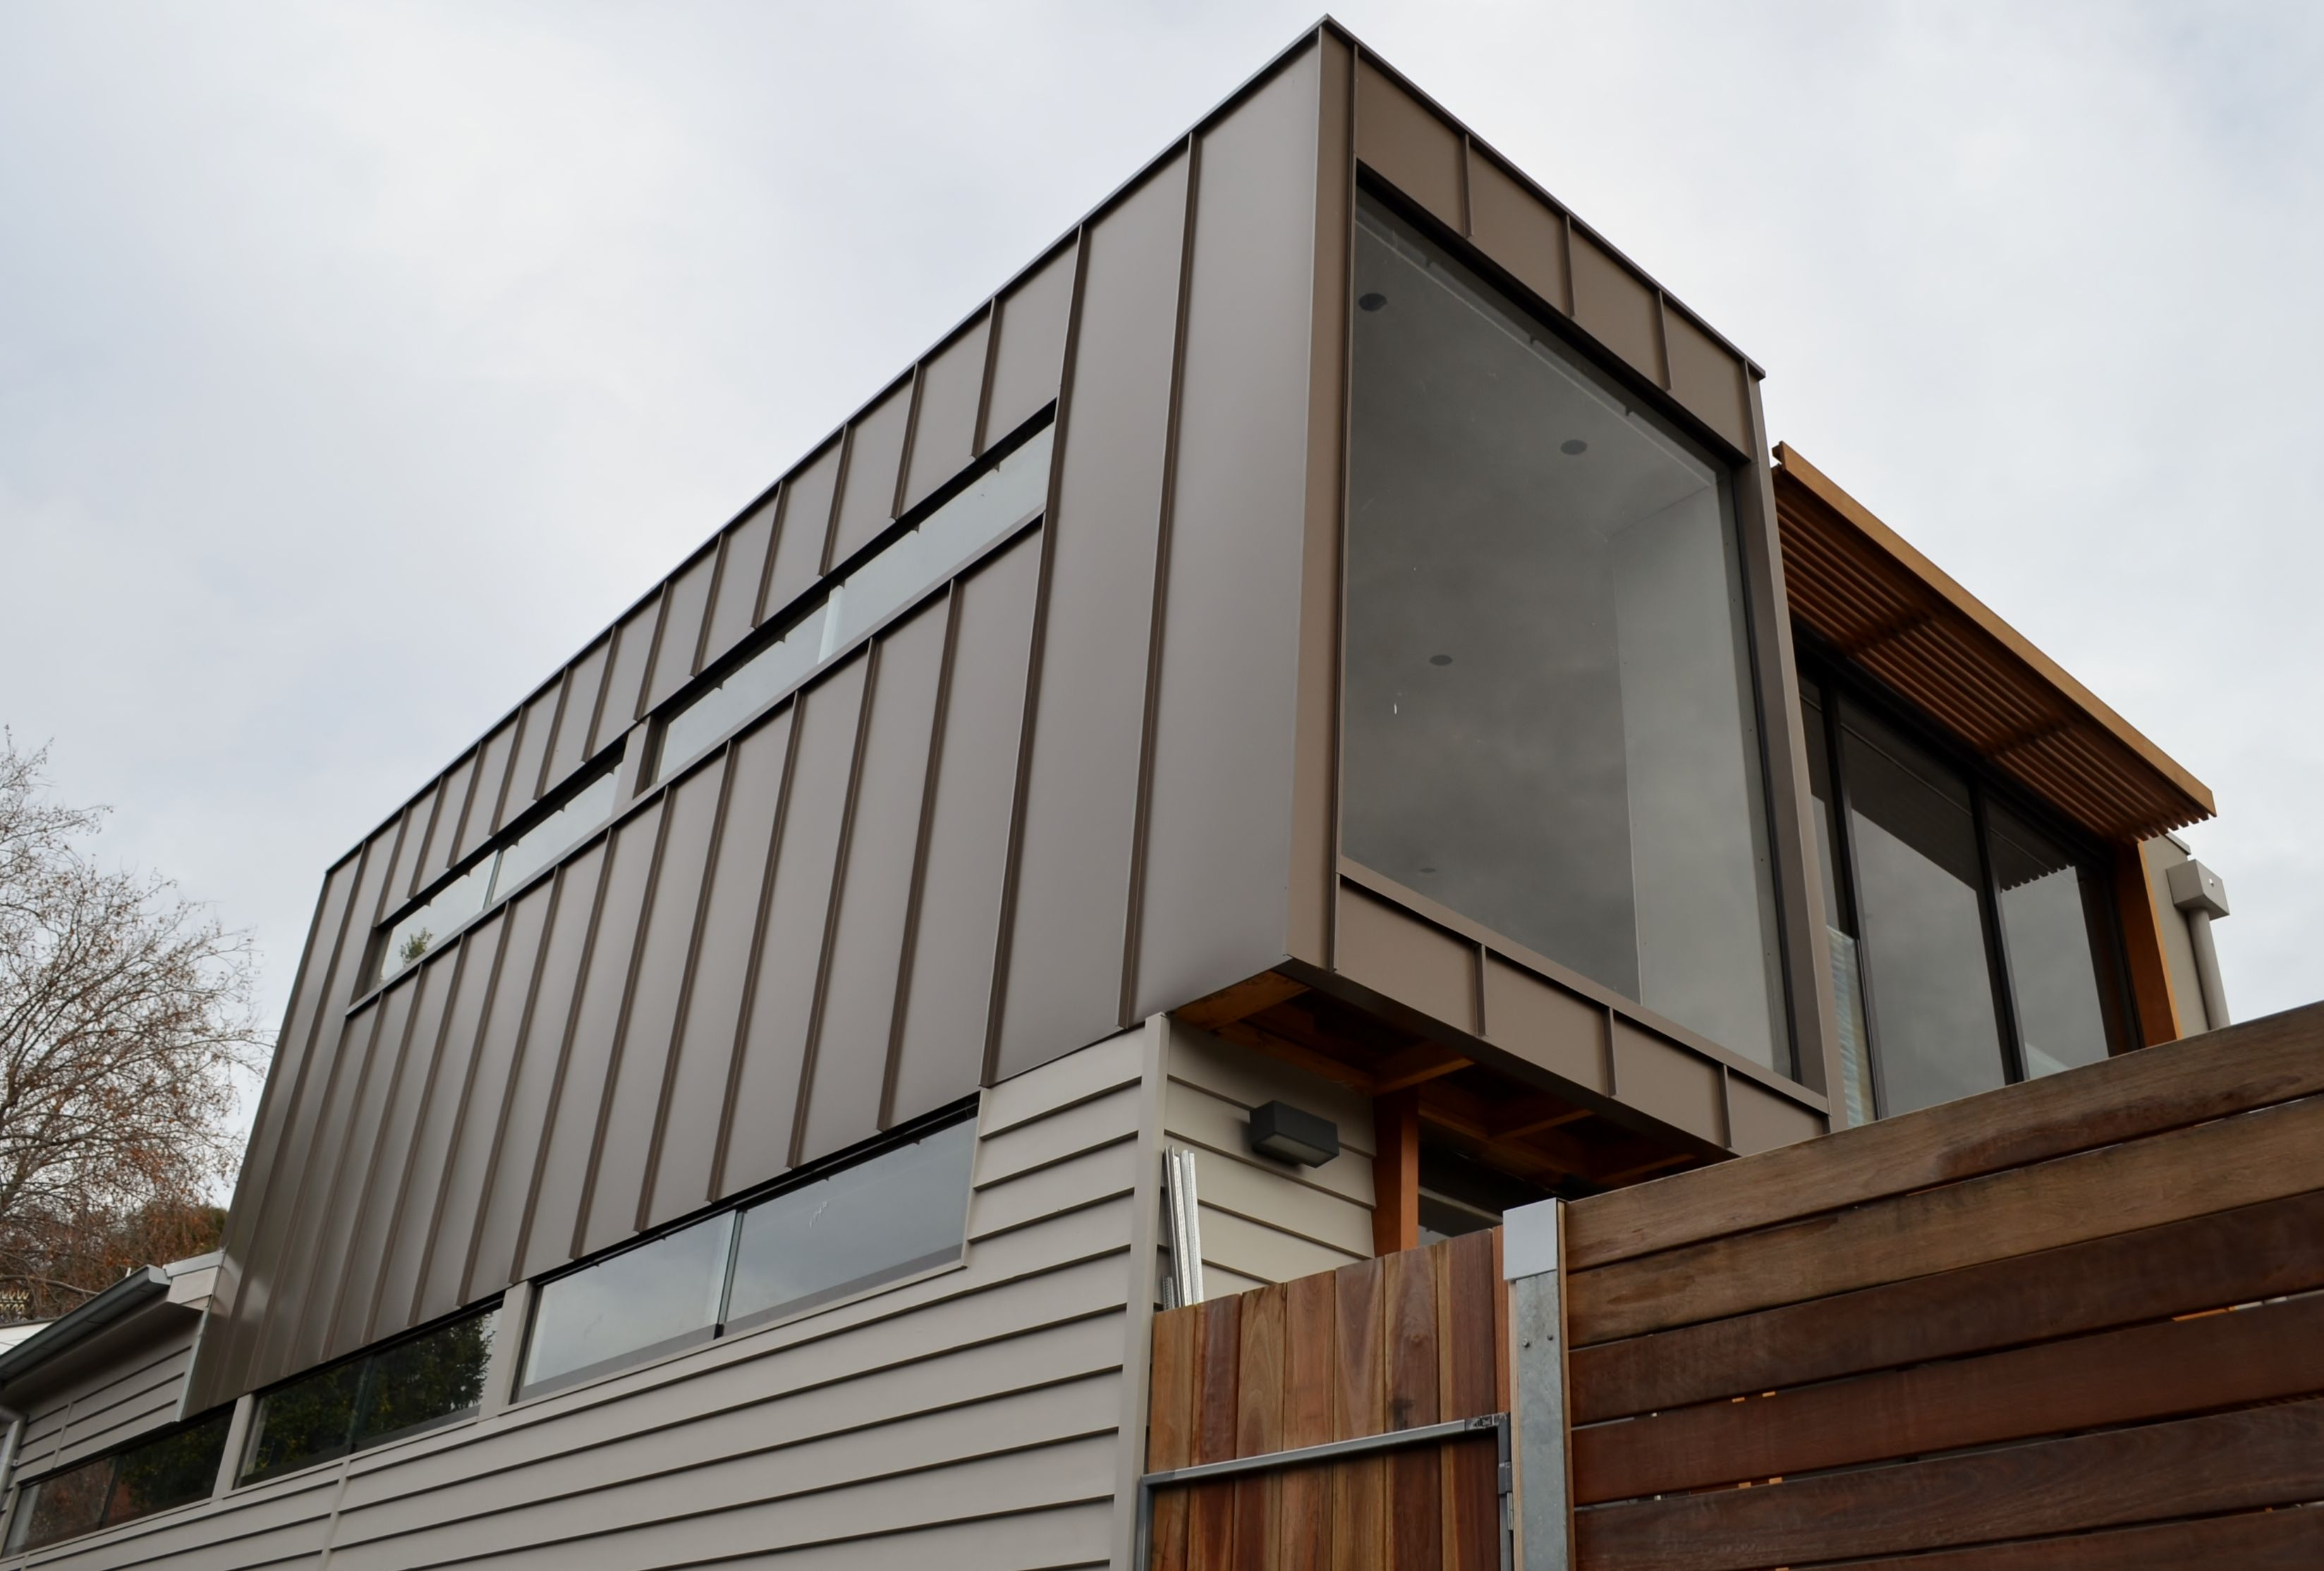 Design Cladding We Install A Range Of Metal Cladding Systems Using Zinc Co